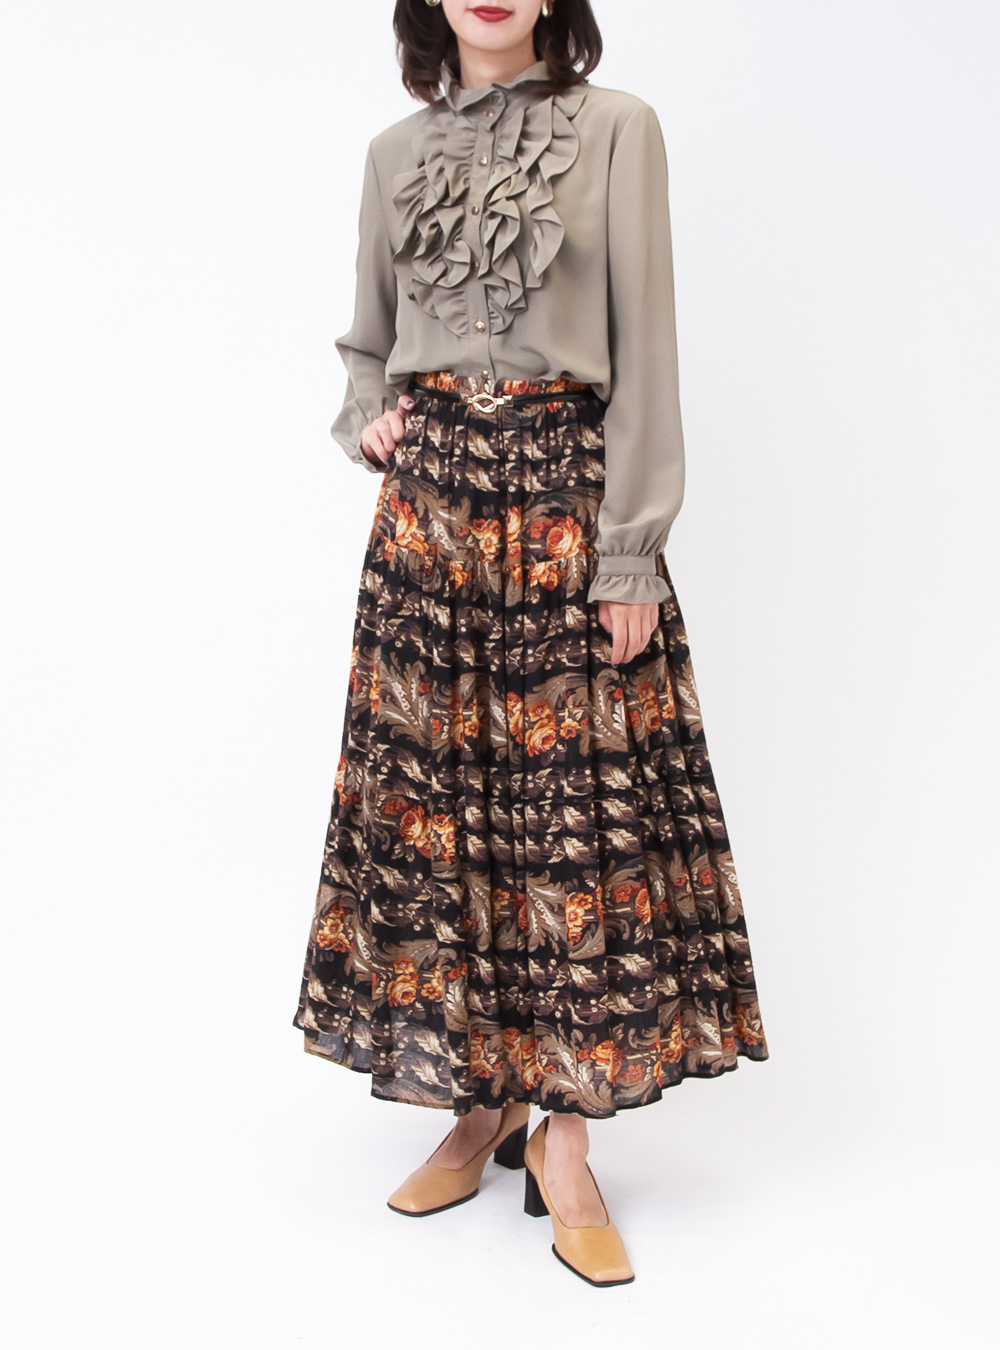 Orange Flower Design Skirt